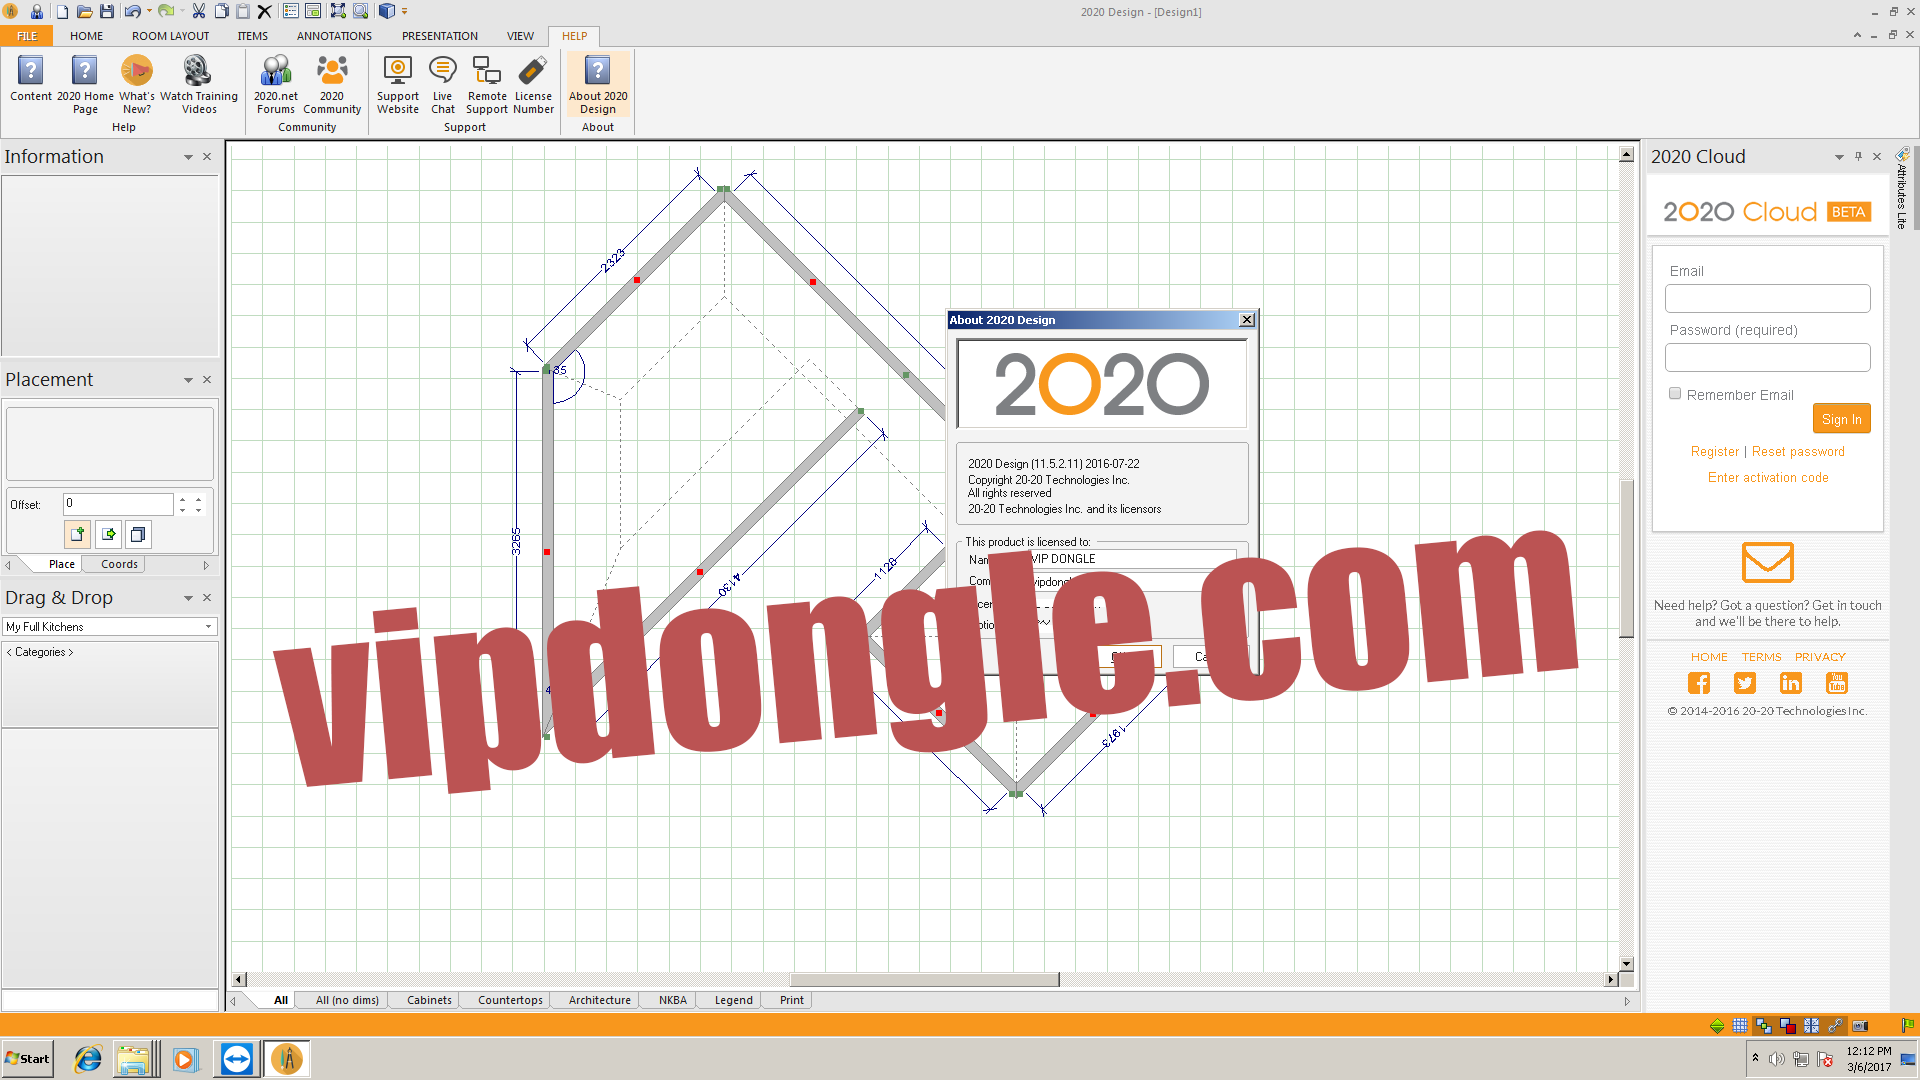 2020 design v11 kitchen design software sentinel superpro dongle - 2020 Kitchen Design